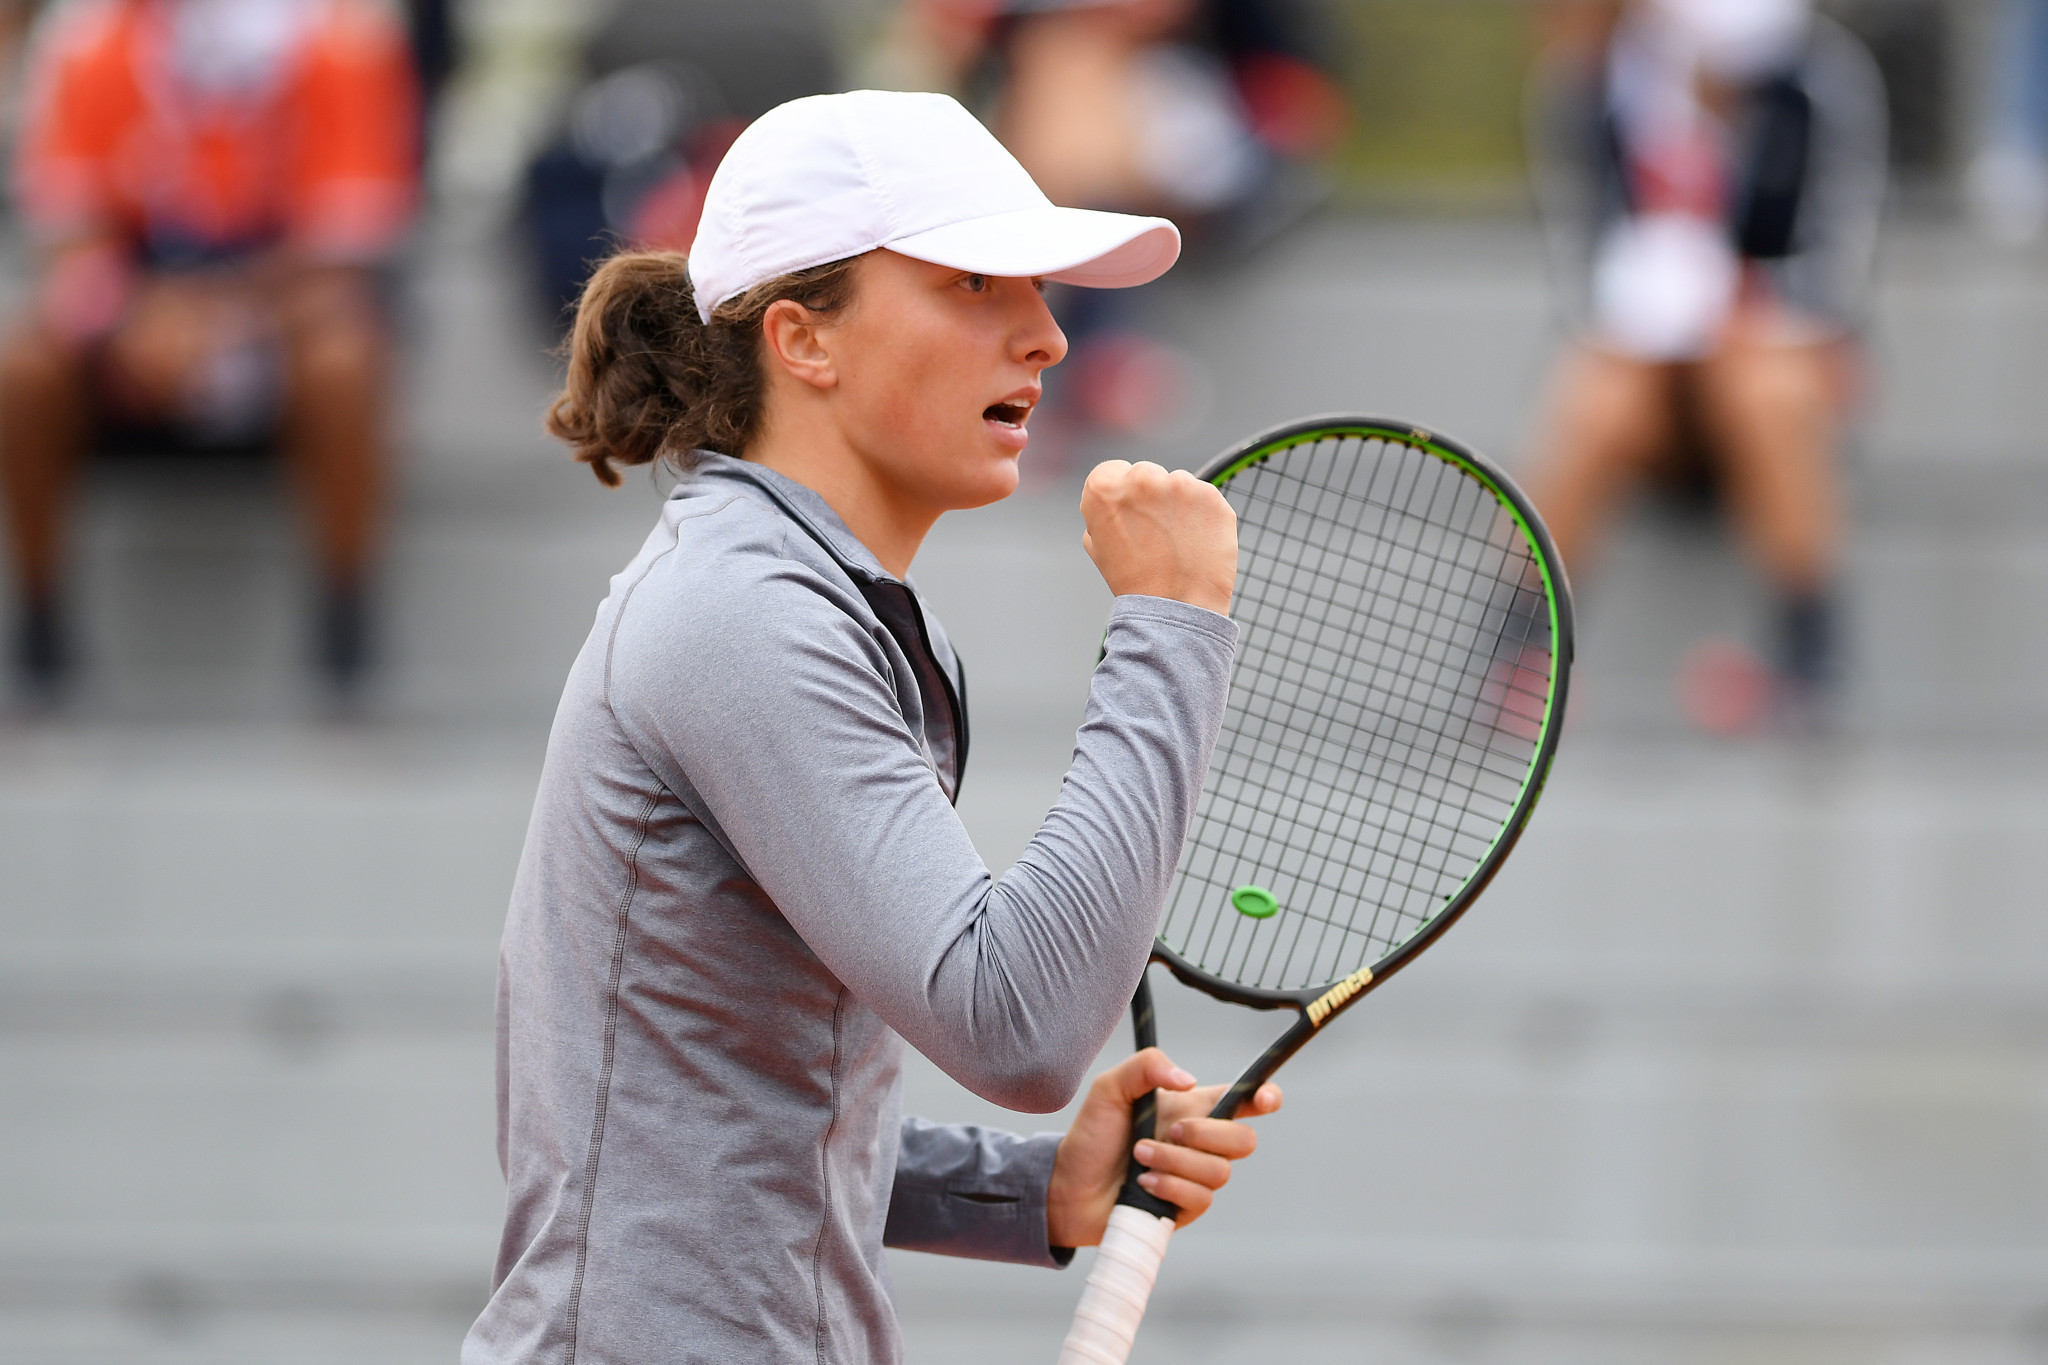 Iga Swiatek caused one of the biggest upsets of the day on the women's side as she knocked out last year's runner-up Marketa Vondrousova ©Getty Images